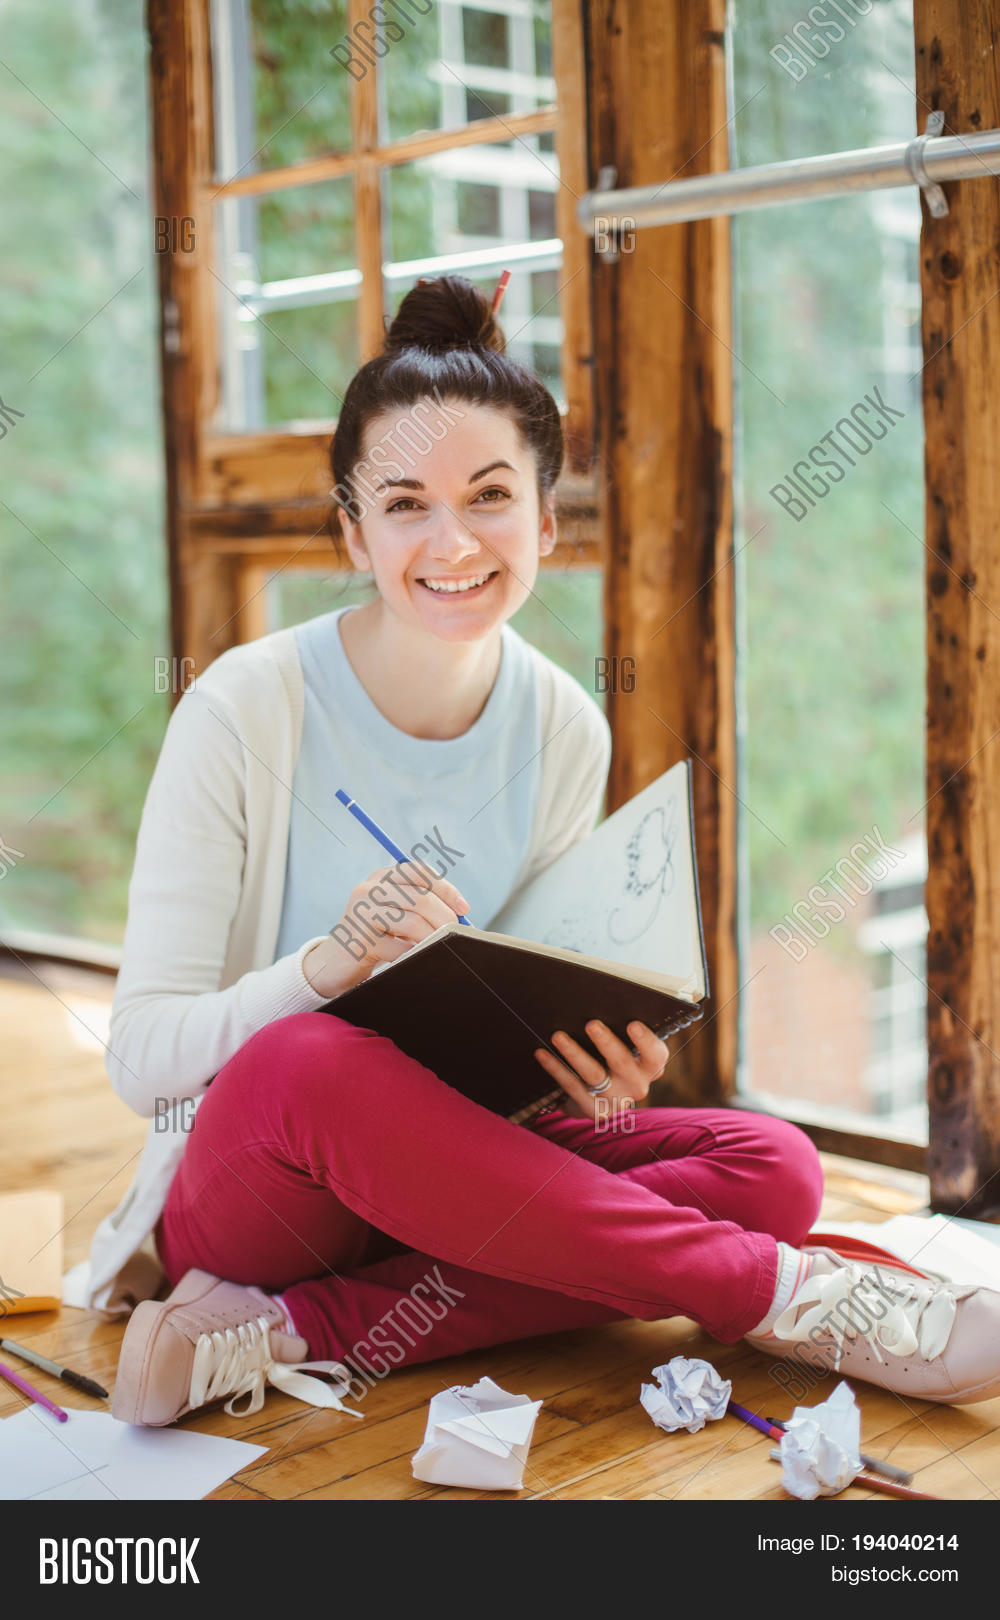 art,artist,attractive,authentic,beautiful,book,brunette,caucasian,college,conceptual,creative,creativity,designer,draw,education,european,exam,exercise-book,expression,female,feminist,fun,girl,happy,indoors,jeans,job,knowledge,laugh,learn,lifestyle,notebook,one,pencil,process,real,school,sketch,slim,smiling,student,study,summer,toned,university,white,woman,work,young